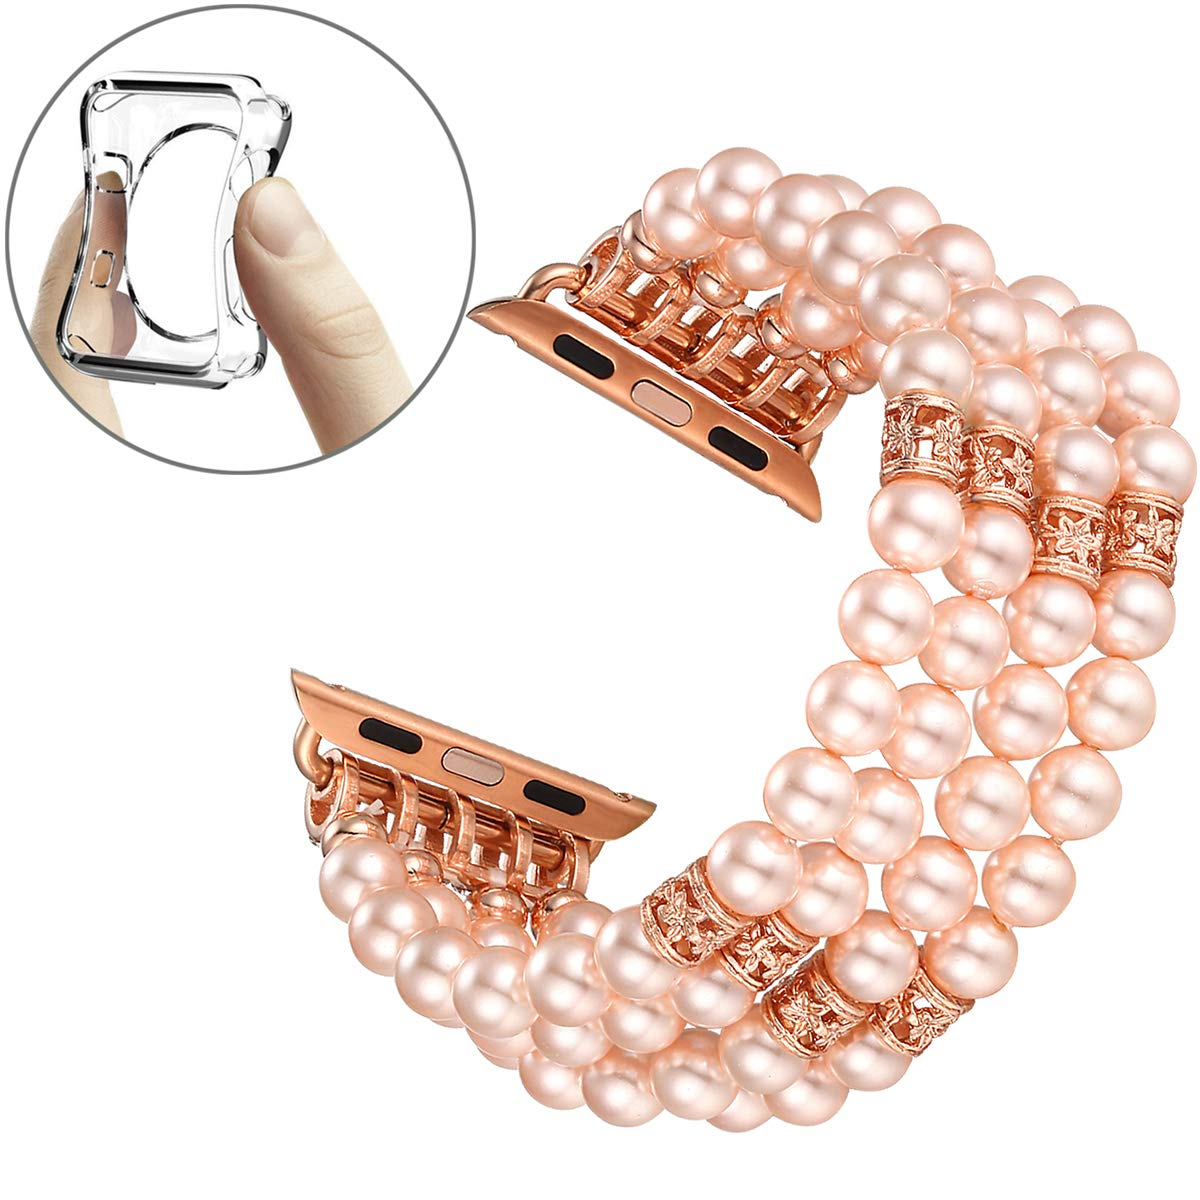 2087cb168 Amazon.com: Fastgo Compatible for Apple Watch Band 38mm 40mm, Fashion  Handmade Beaded Elastic Stretch Bracelet Replacement Band Series 4/3/2/1  (Pink ...